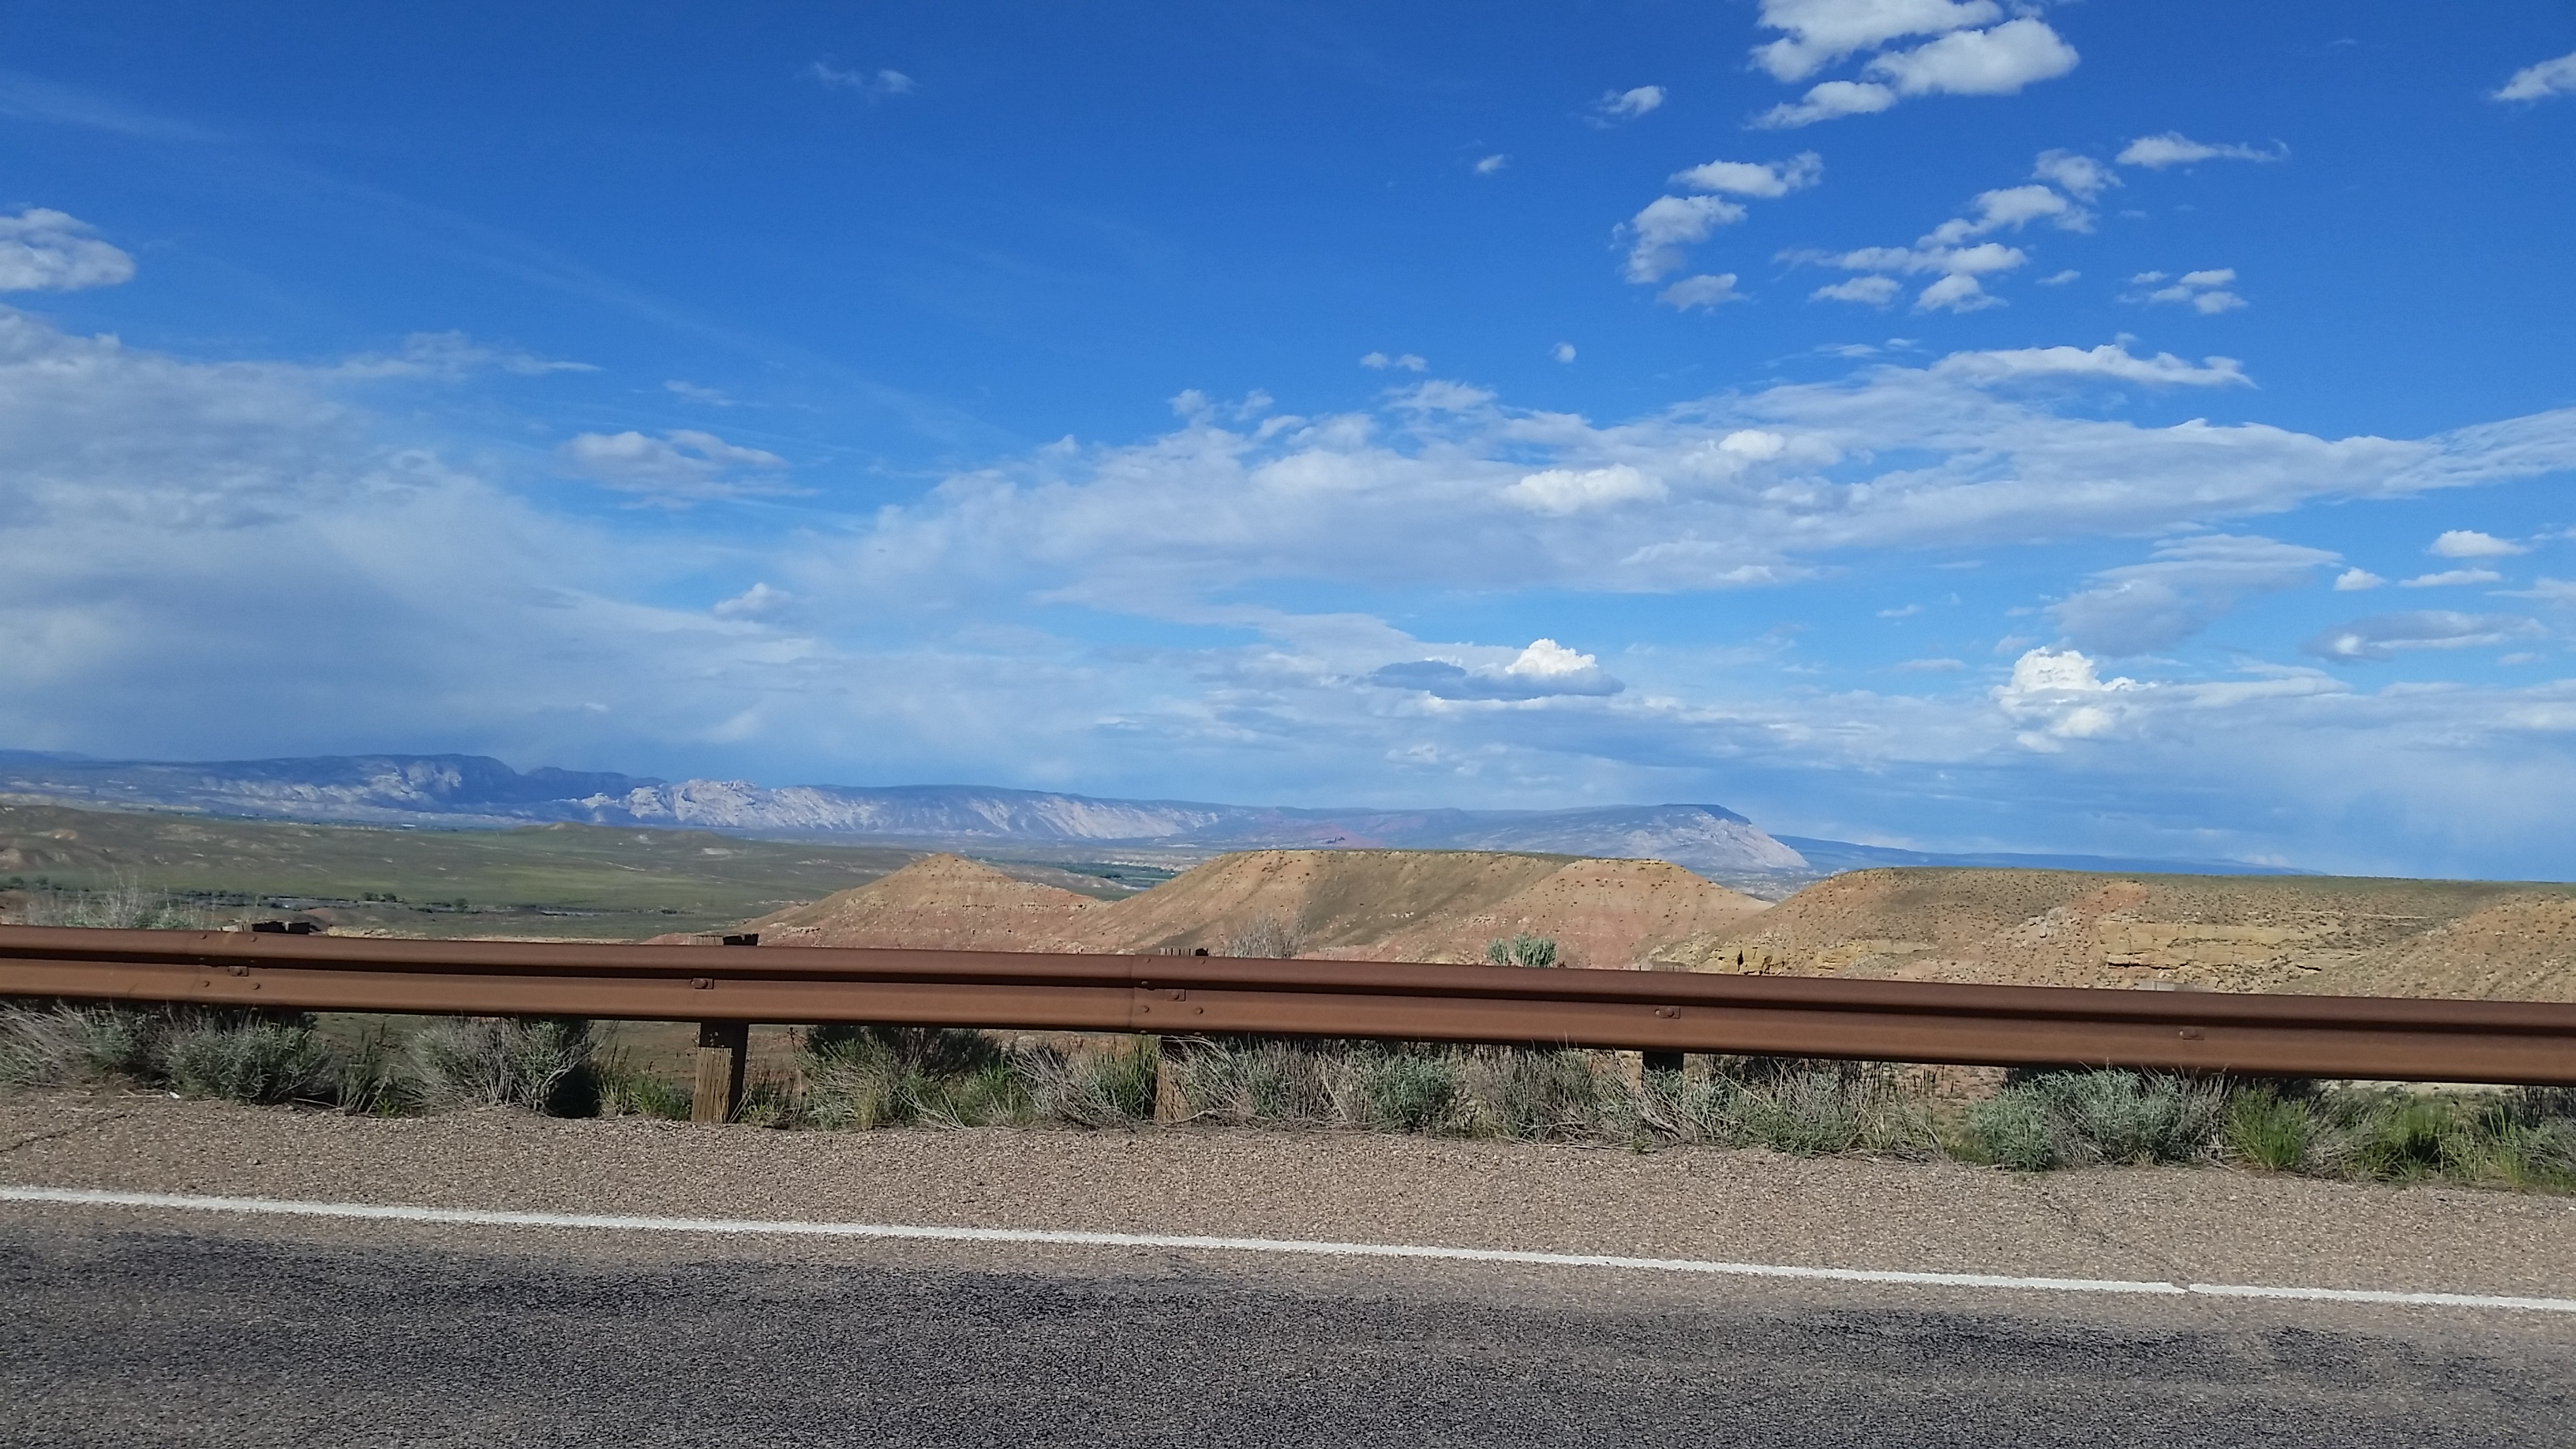 Picture taken from road south of Vernal with Split Mountain and Blue Mountain in the distance.